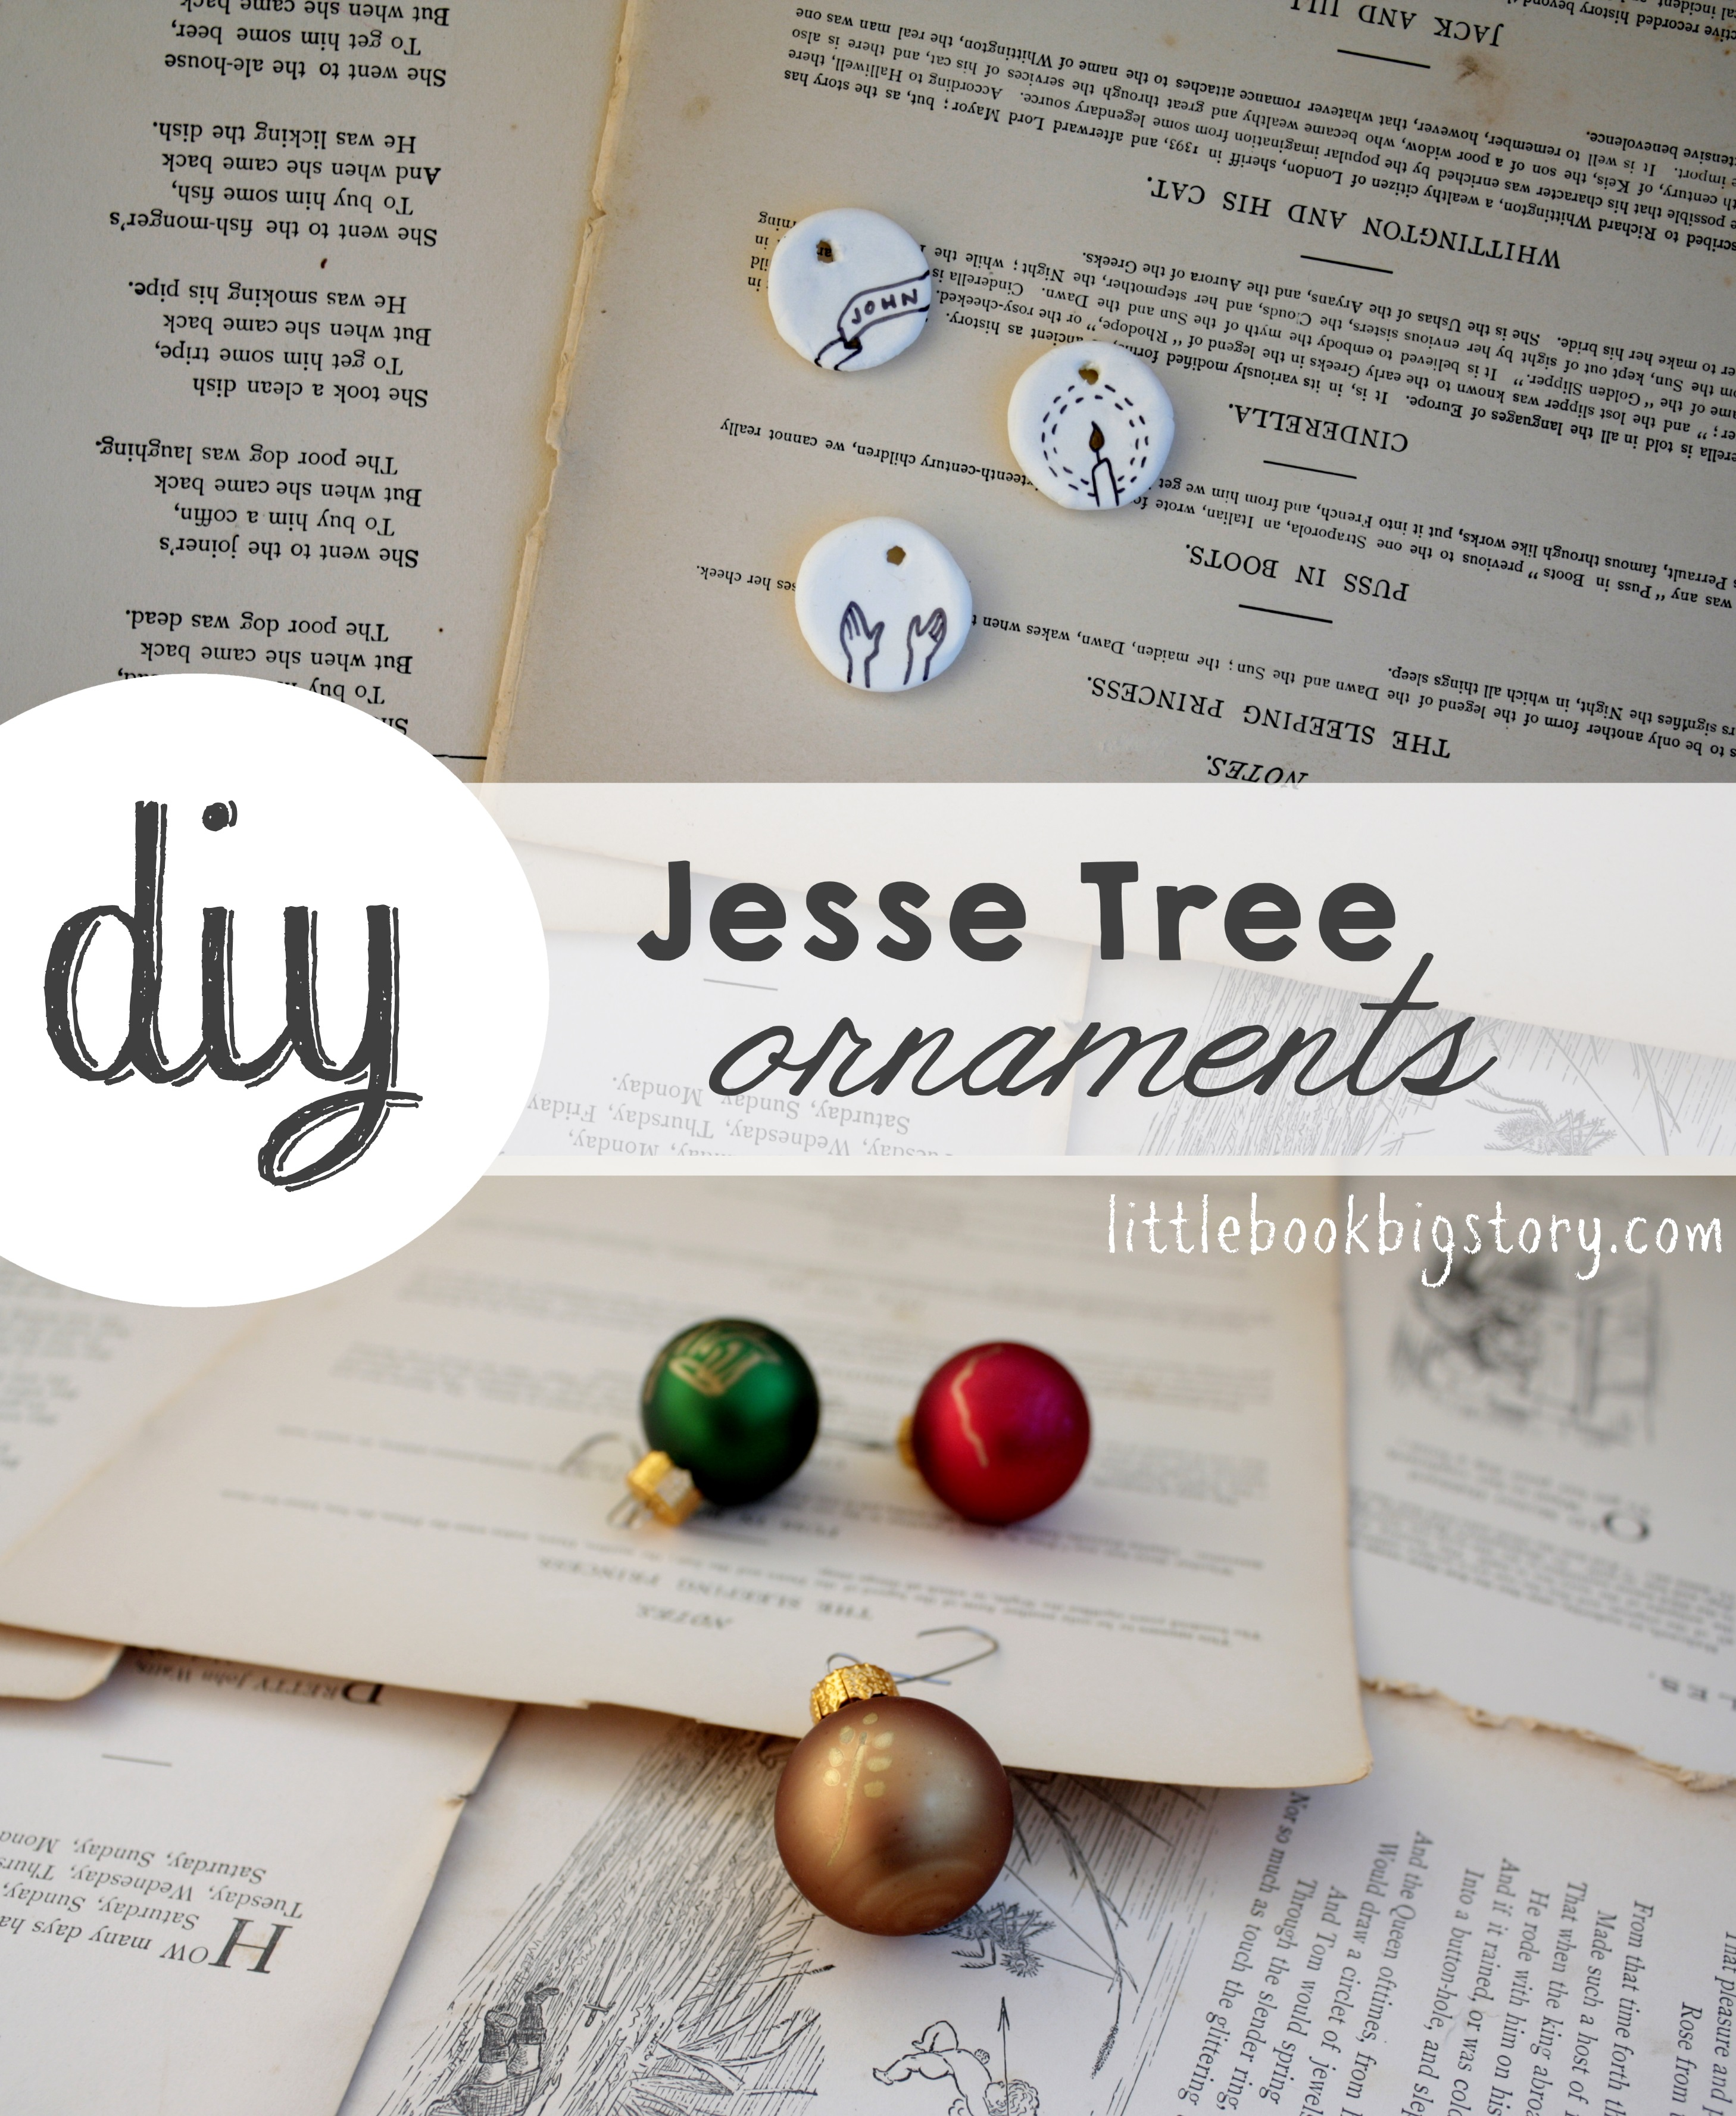 A quick guide to jesse tree ornaments little book big story diy jesse tree ornaments with instructions little book big story solutioingenieria Gallery